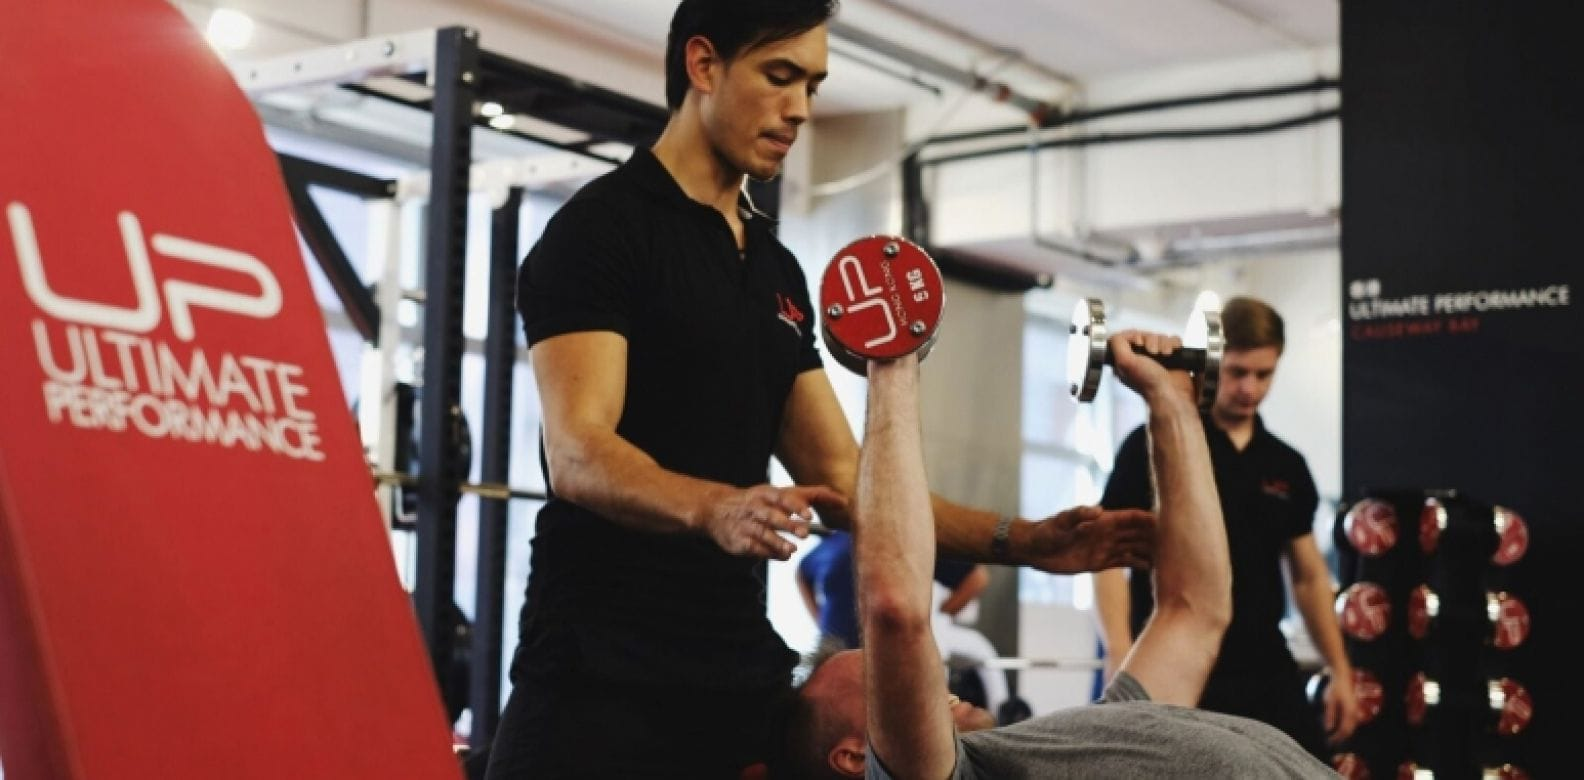 Best CrossFit and Spinning Studios in Hong Kong, where to workout in Hong Kong, fitness guide hong kong